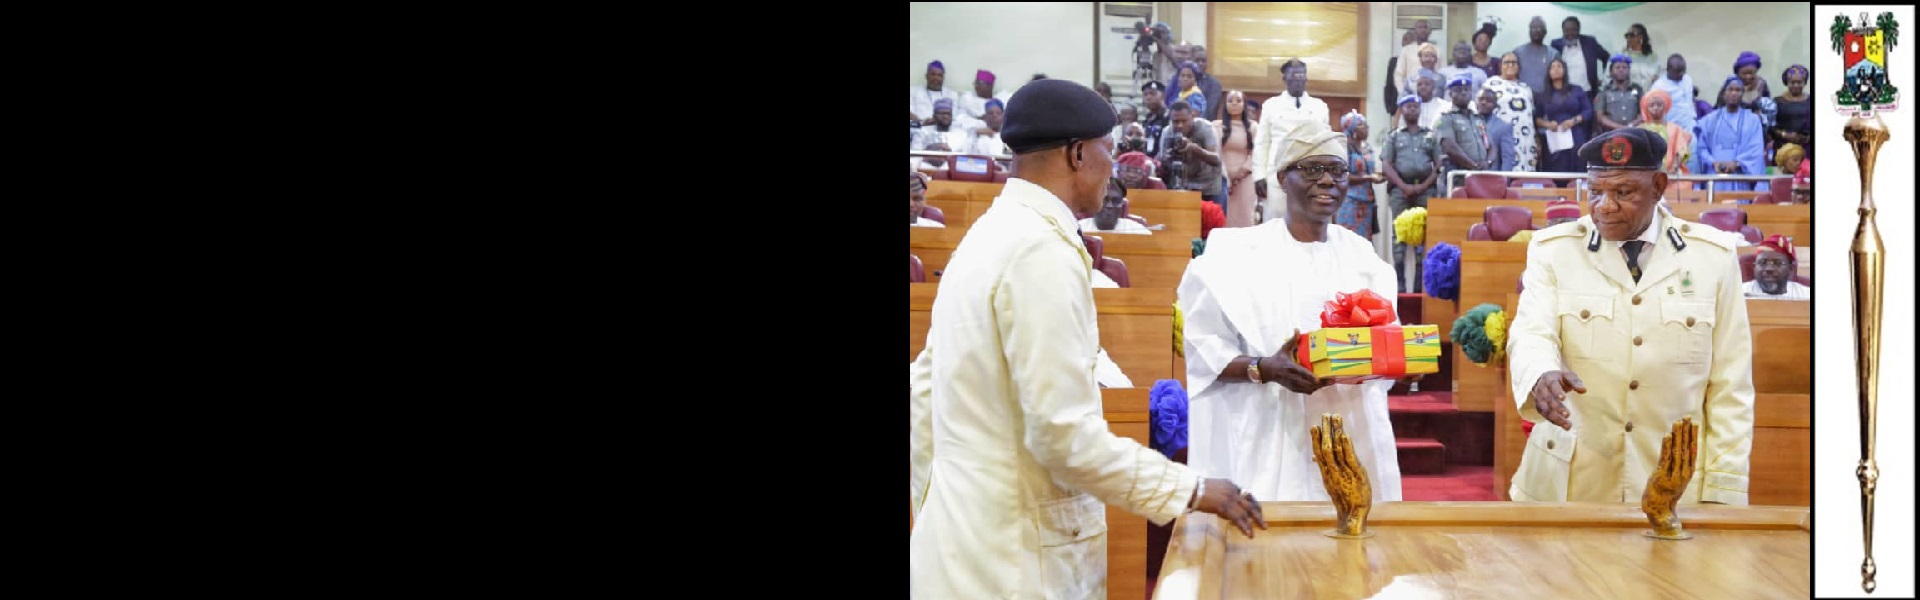 SANWO-OLU PRESENTS N1.168TRN Y2020 BUDGET ESTIMATES TO LAGOS ASSEMBLY.